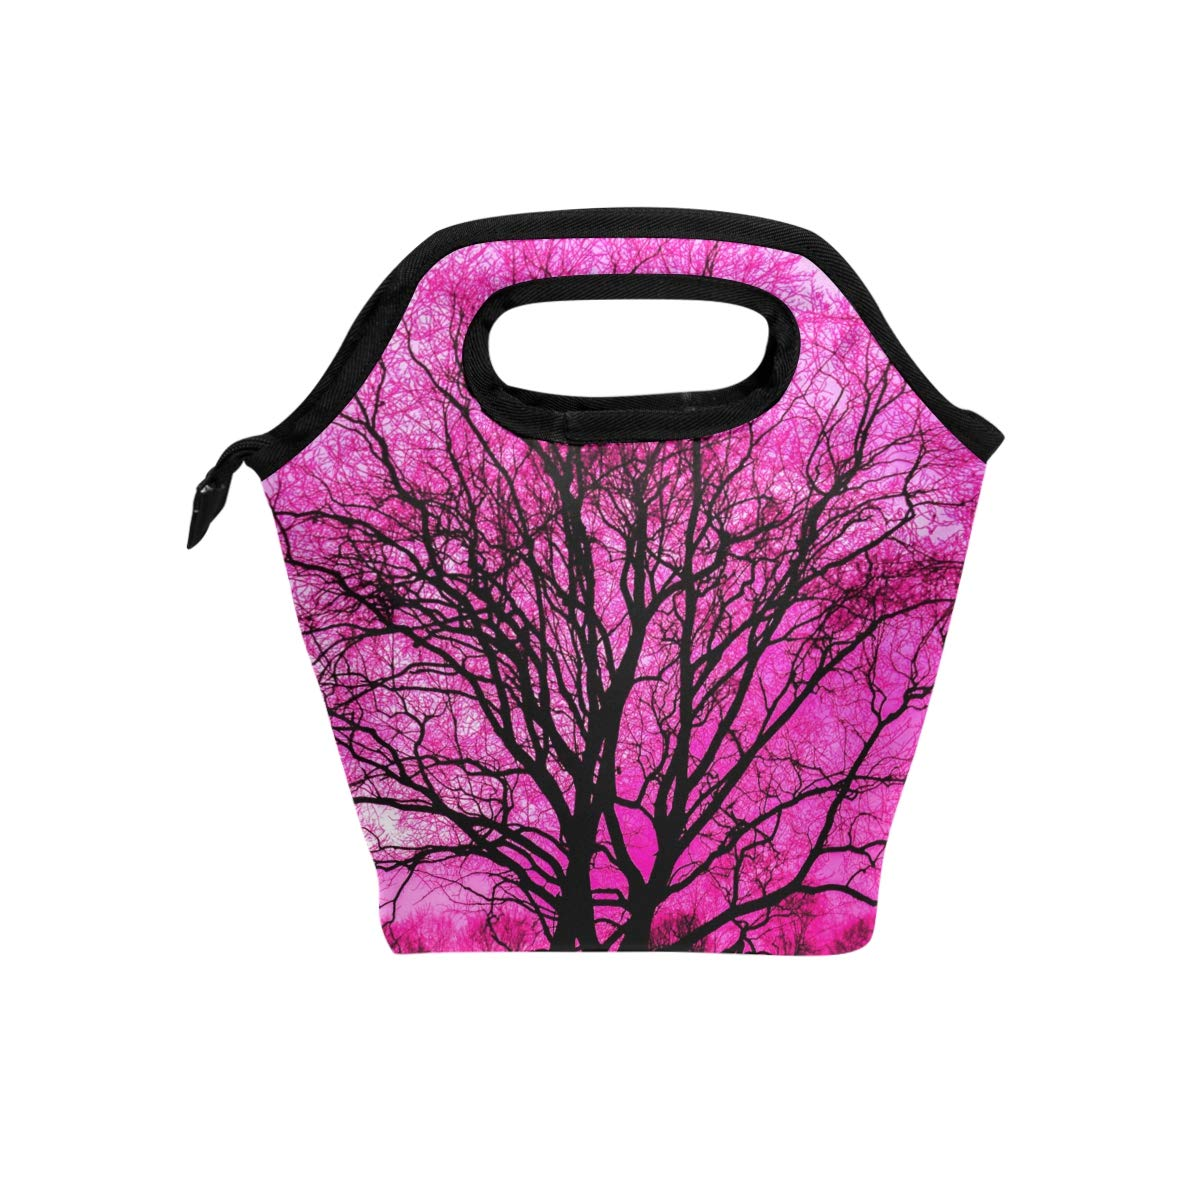 c0e41316ef1f Amazon.com - HEOEH Pink Sakura Tree Lunch Bag Cooler Tote Bag ...